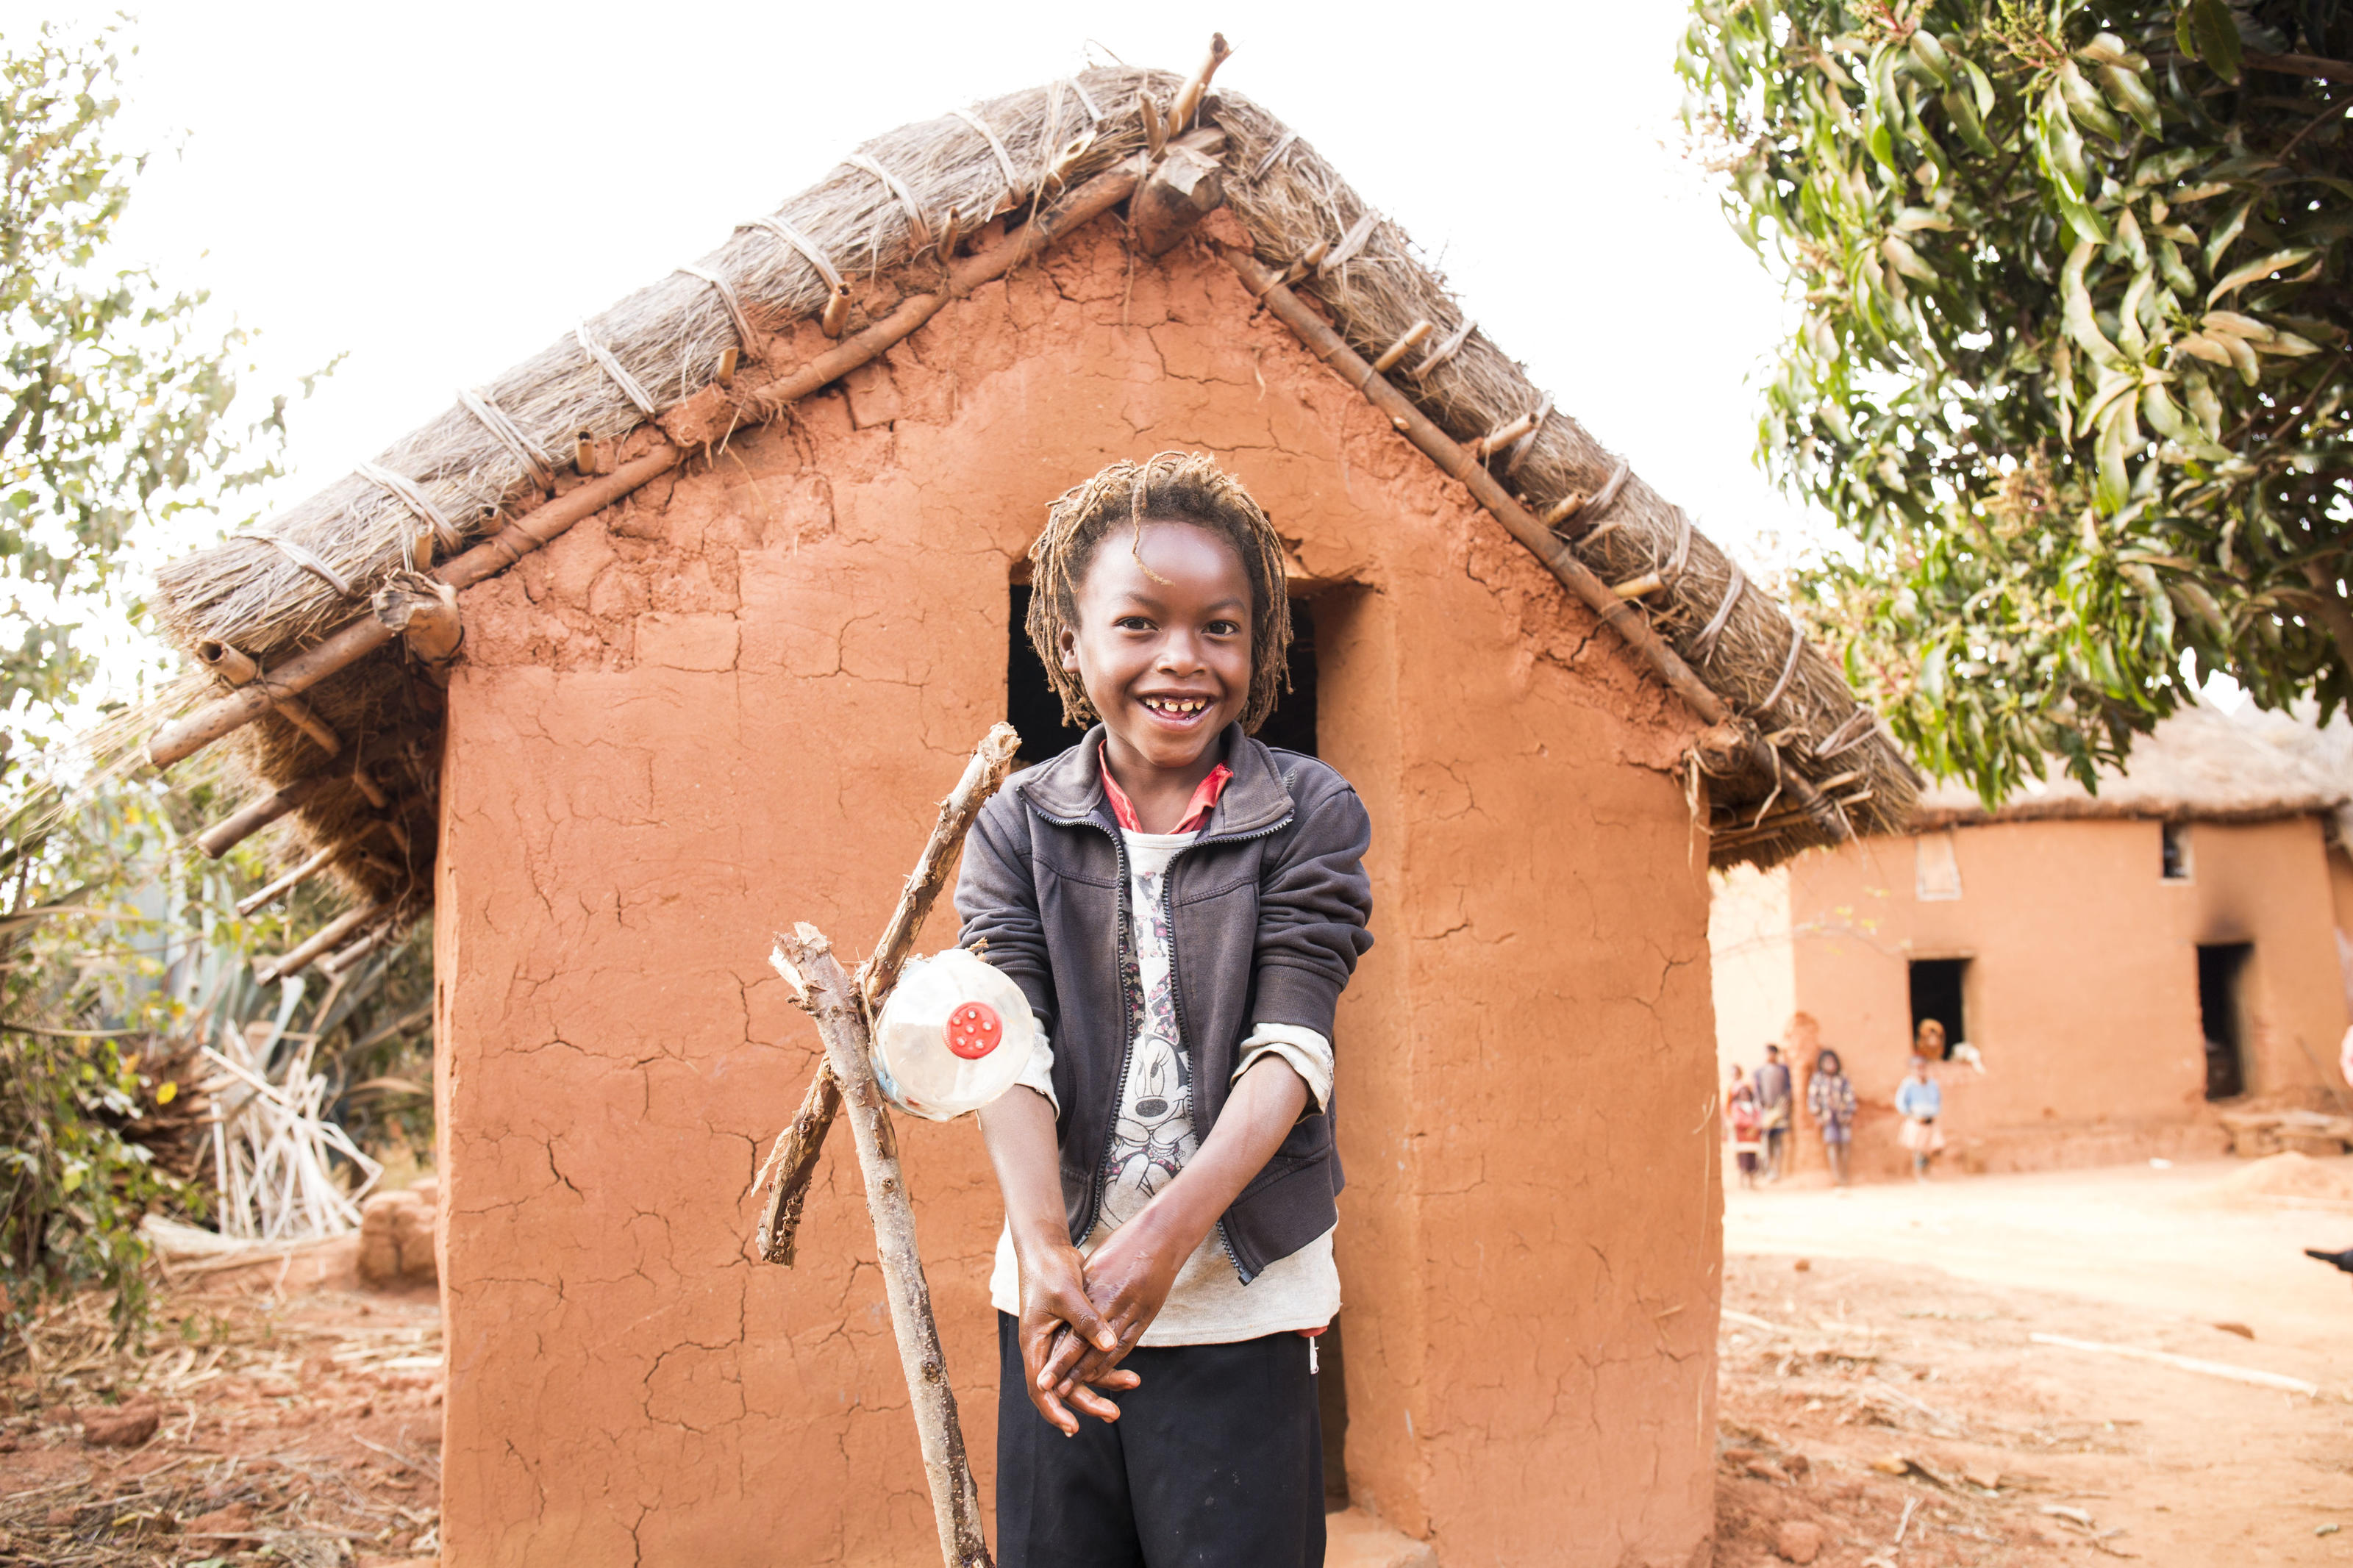 Toky, 6 uses a 'tippy tap' with clean water and soap.